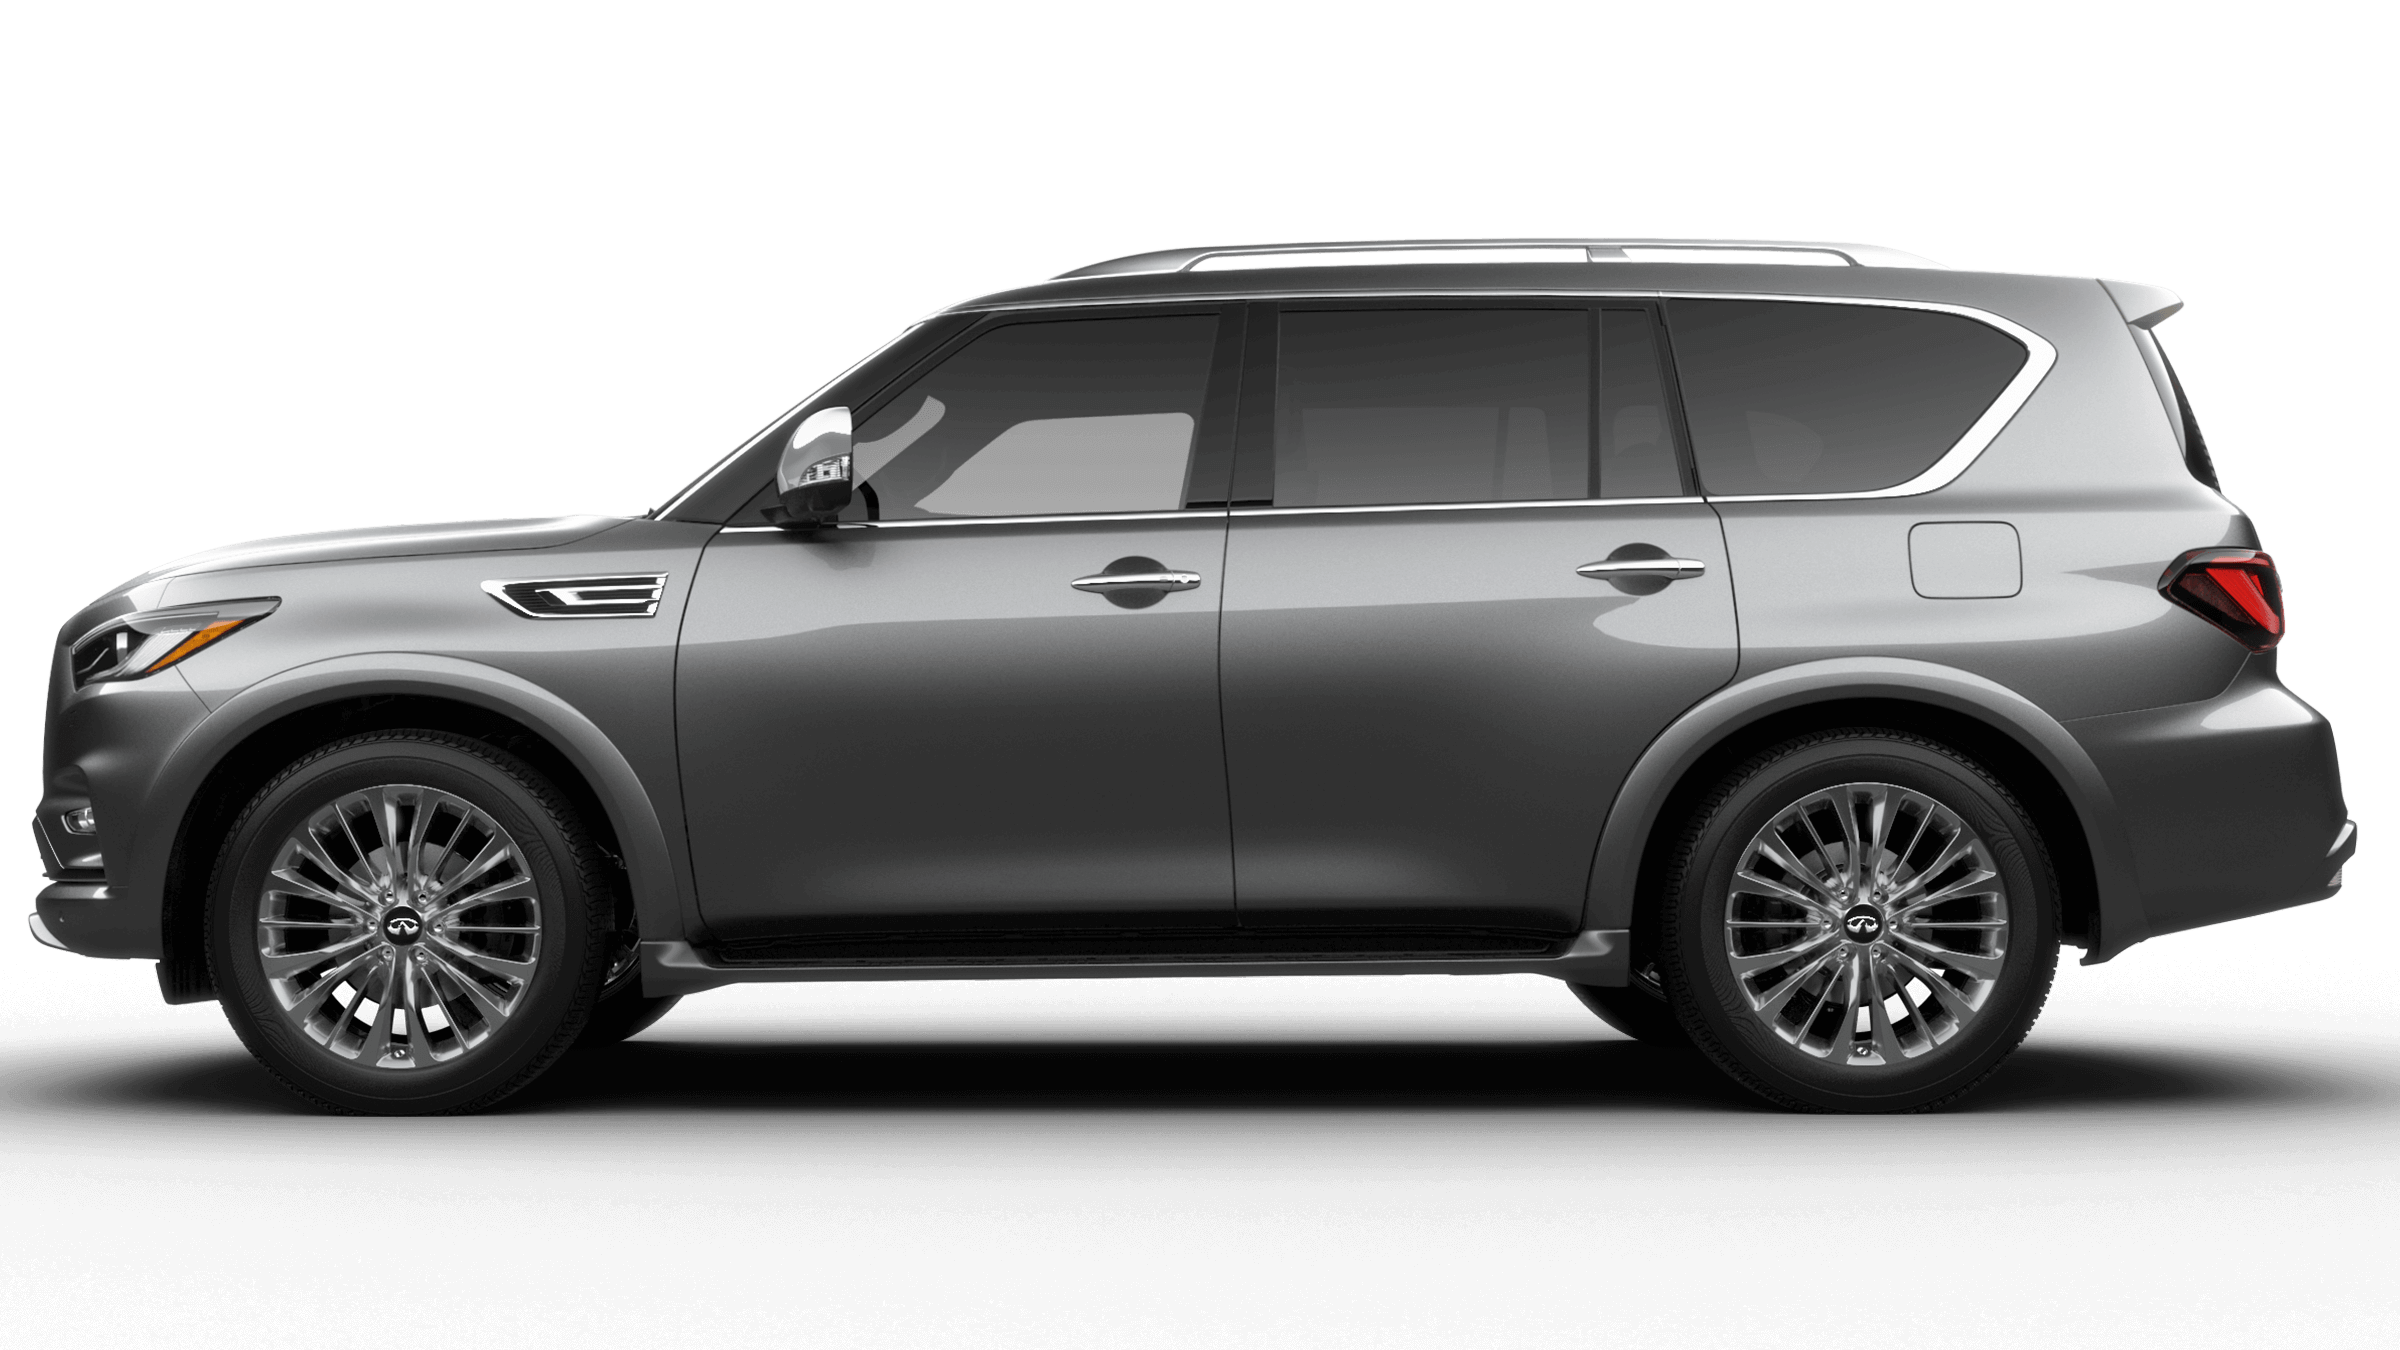 New 2021 Infiniti Qx80 Sensory RWD model for sale at Oxnard Infiniti dealership near Santa Clarita, CA